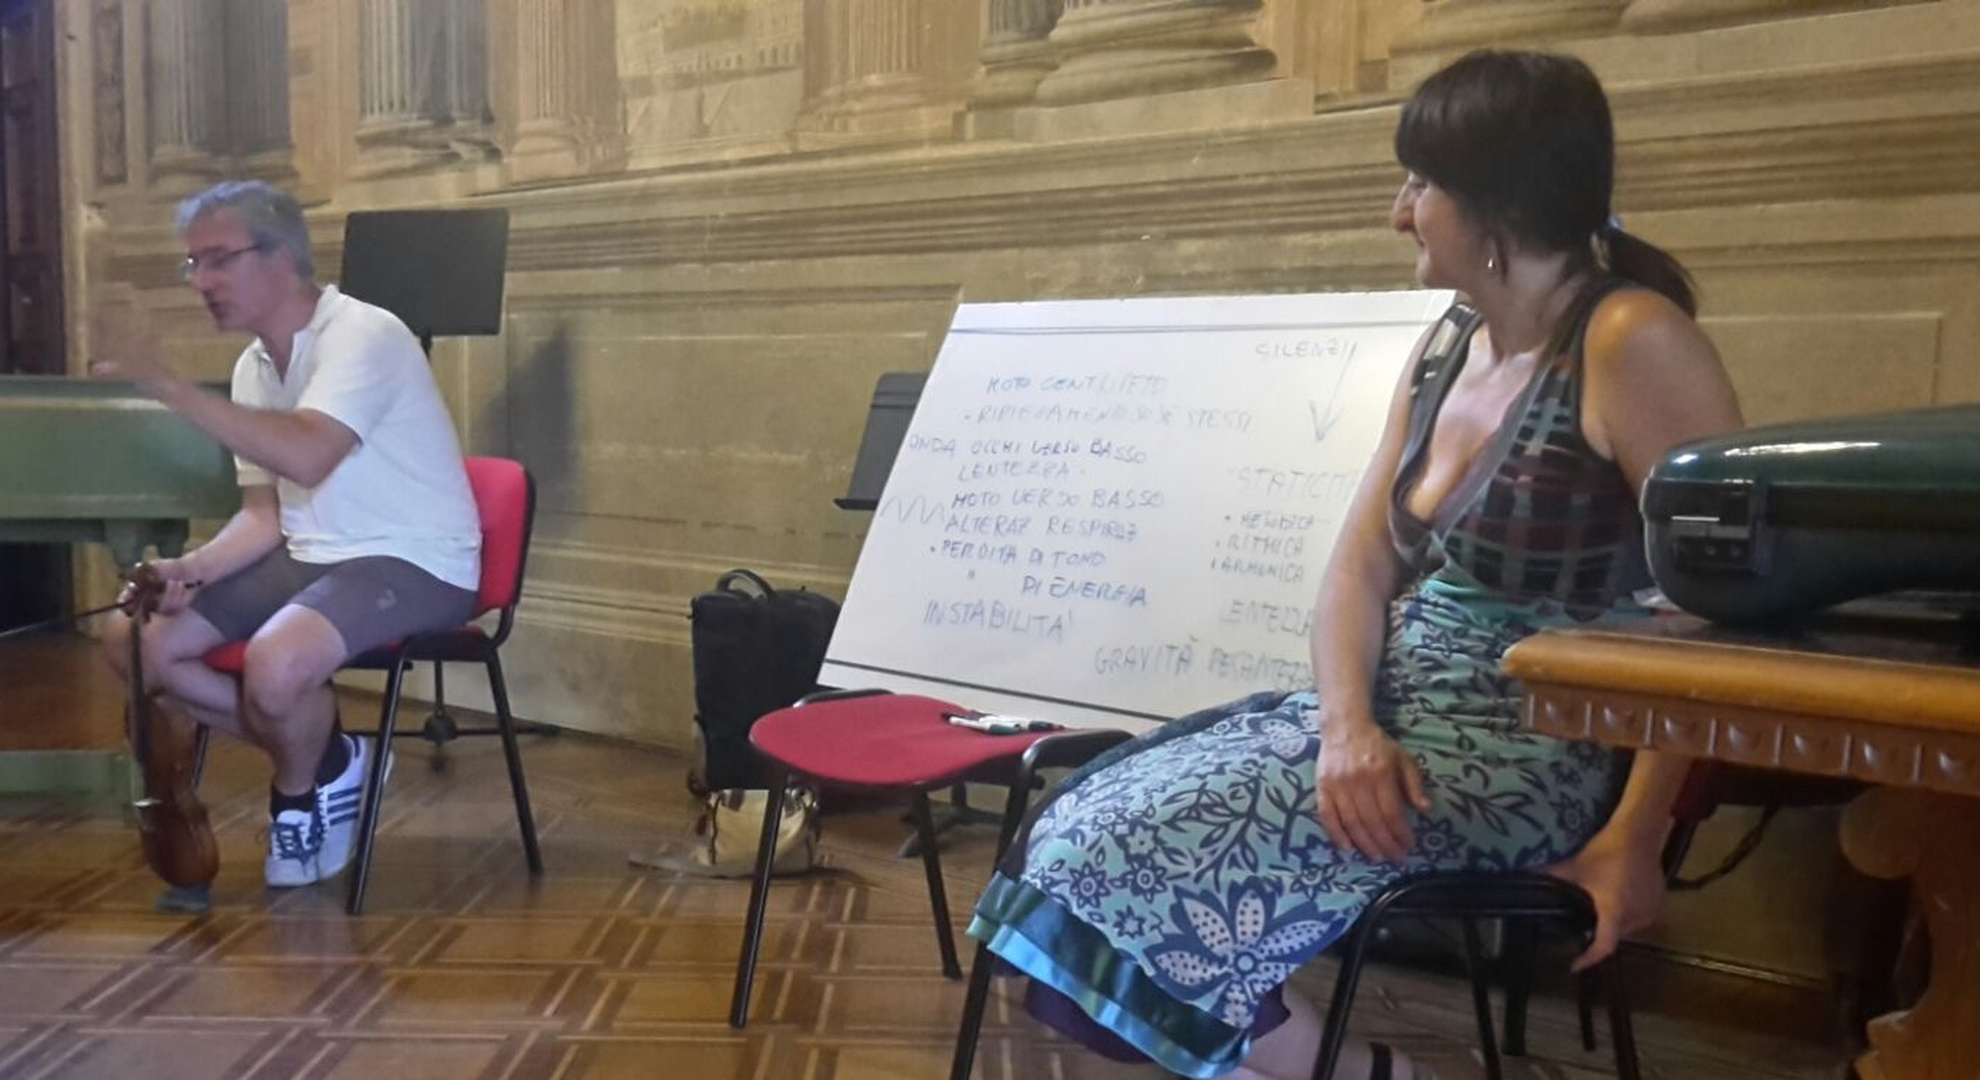 Course of Rhetoric and Gesture with Francesca Gualandri and Judy Tarling